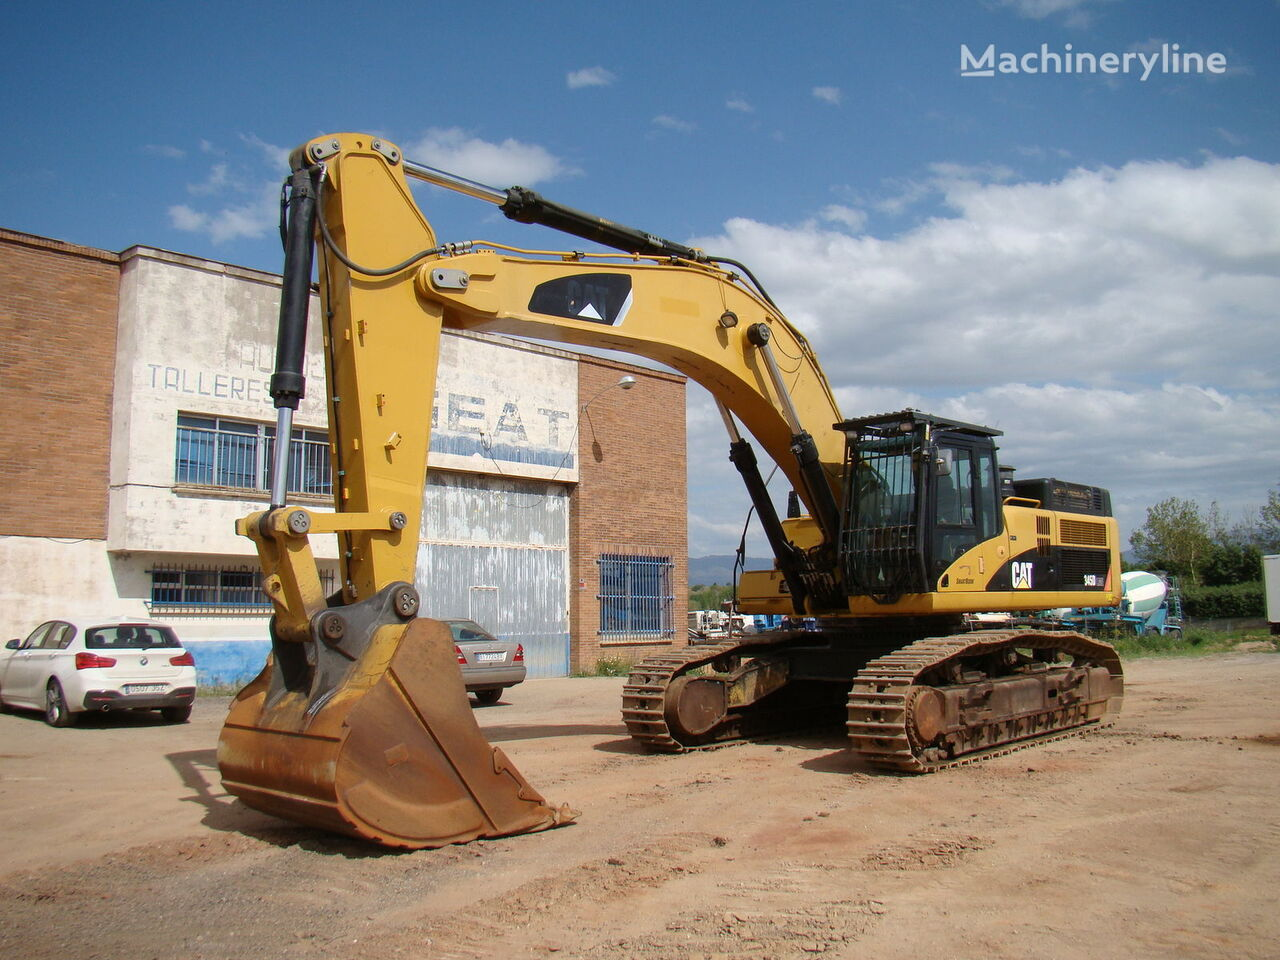 CATERPILLAR 345 DL ME tracked excavators for sale, tracked digger